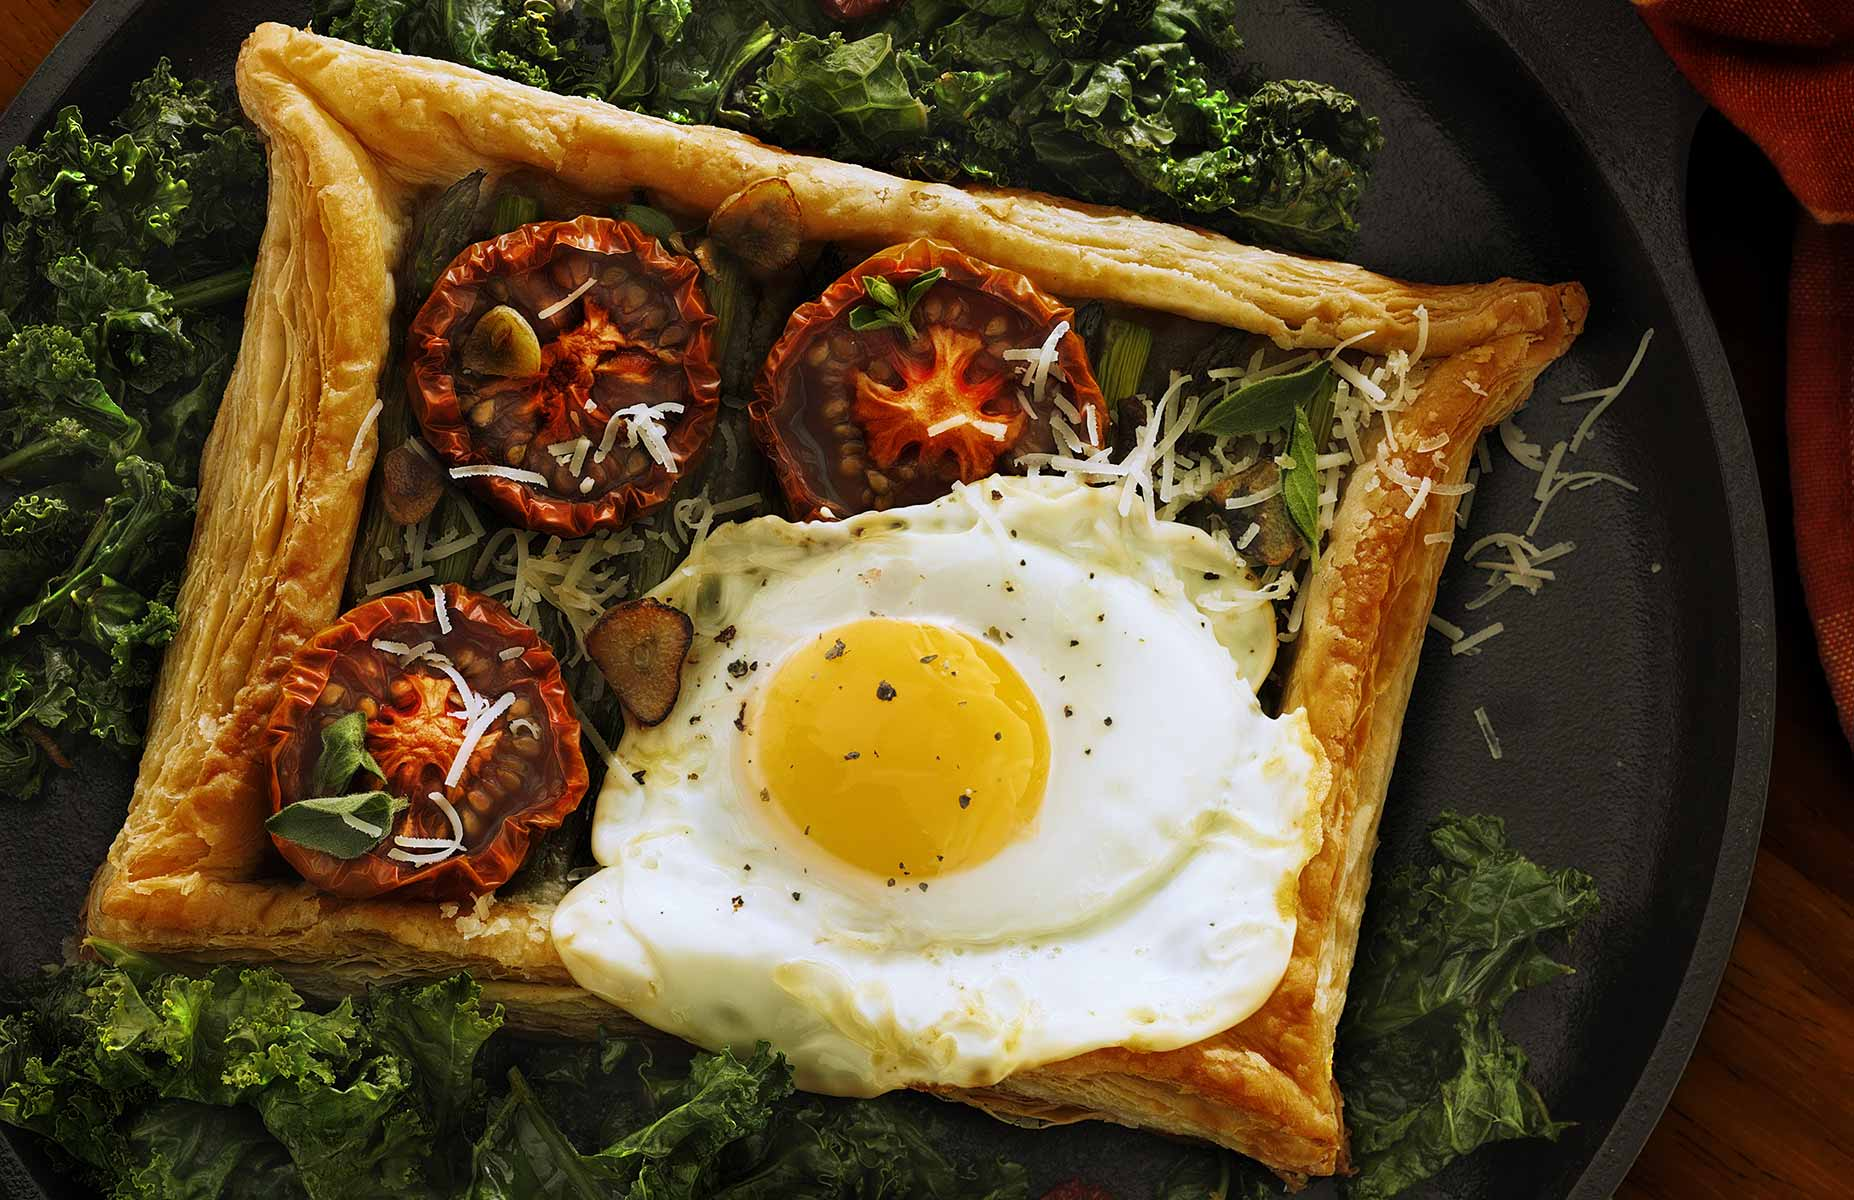 Fried Egg En Croute is an entree made with Phyllo dough shaped into a rectangular shell photographed from above. It is filled with asparagus, roasted tomatos, sauteed garlic, parmesan cheese then baked with spices and herbs. The delectable treat is finished with a fried egg and served on a bed of kale leaves all resting on a cast iron grill pan on dark wood. The image is in a landscape orientation and softly back lit.